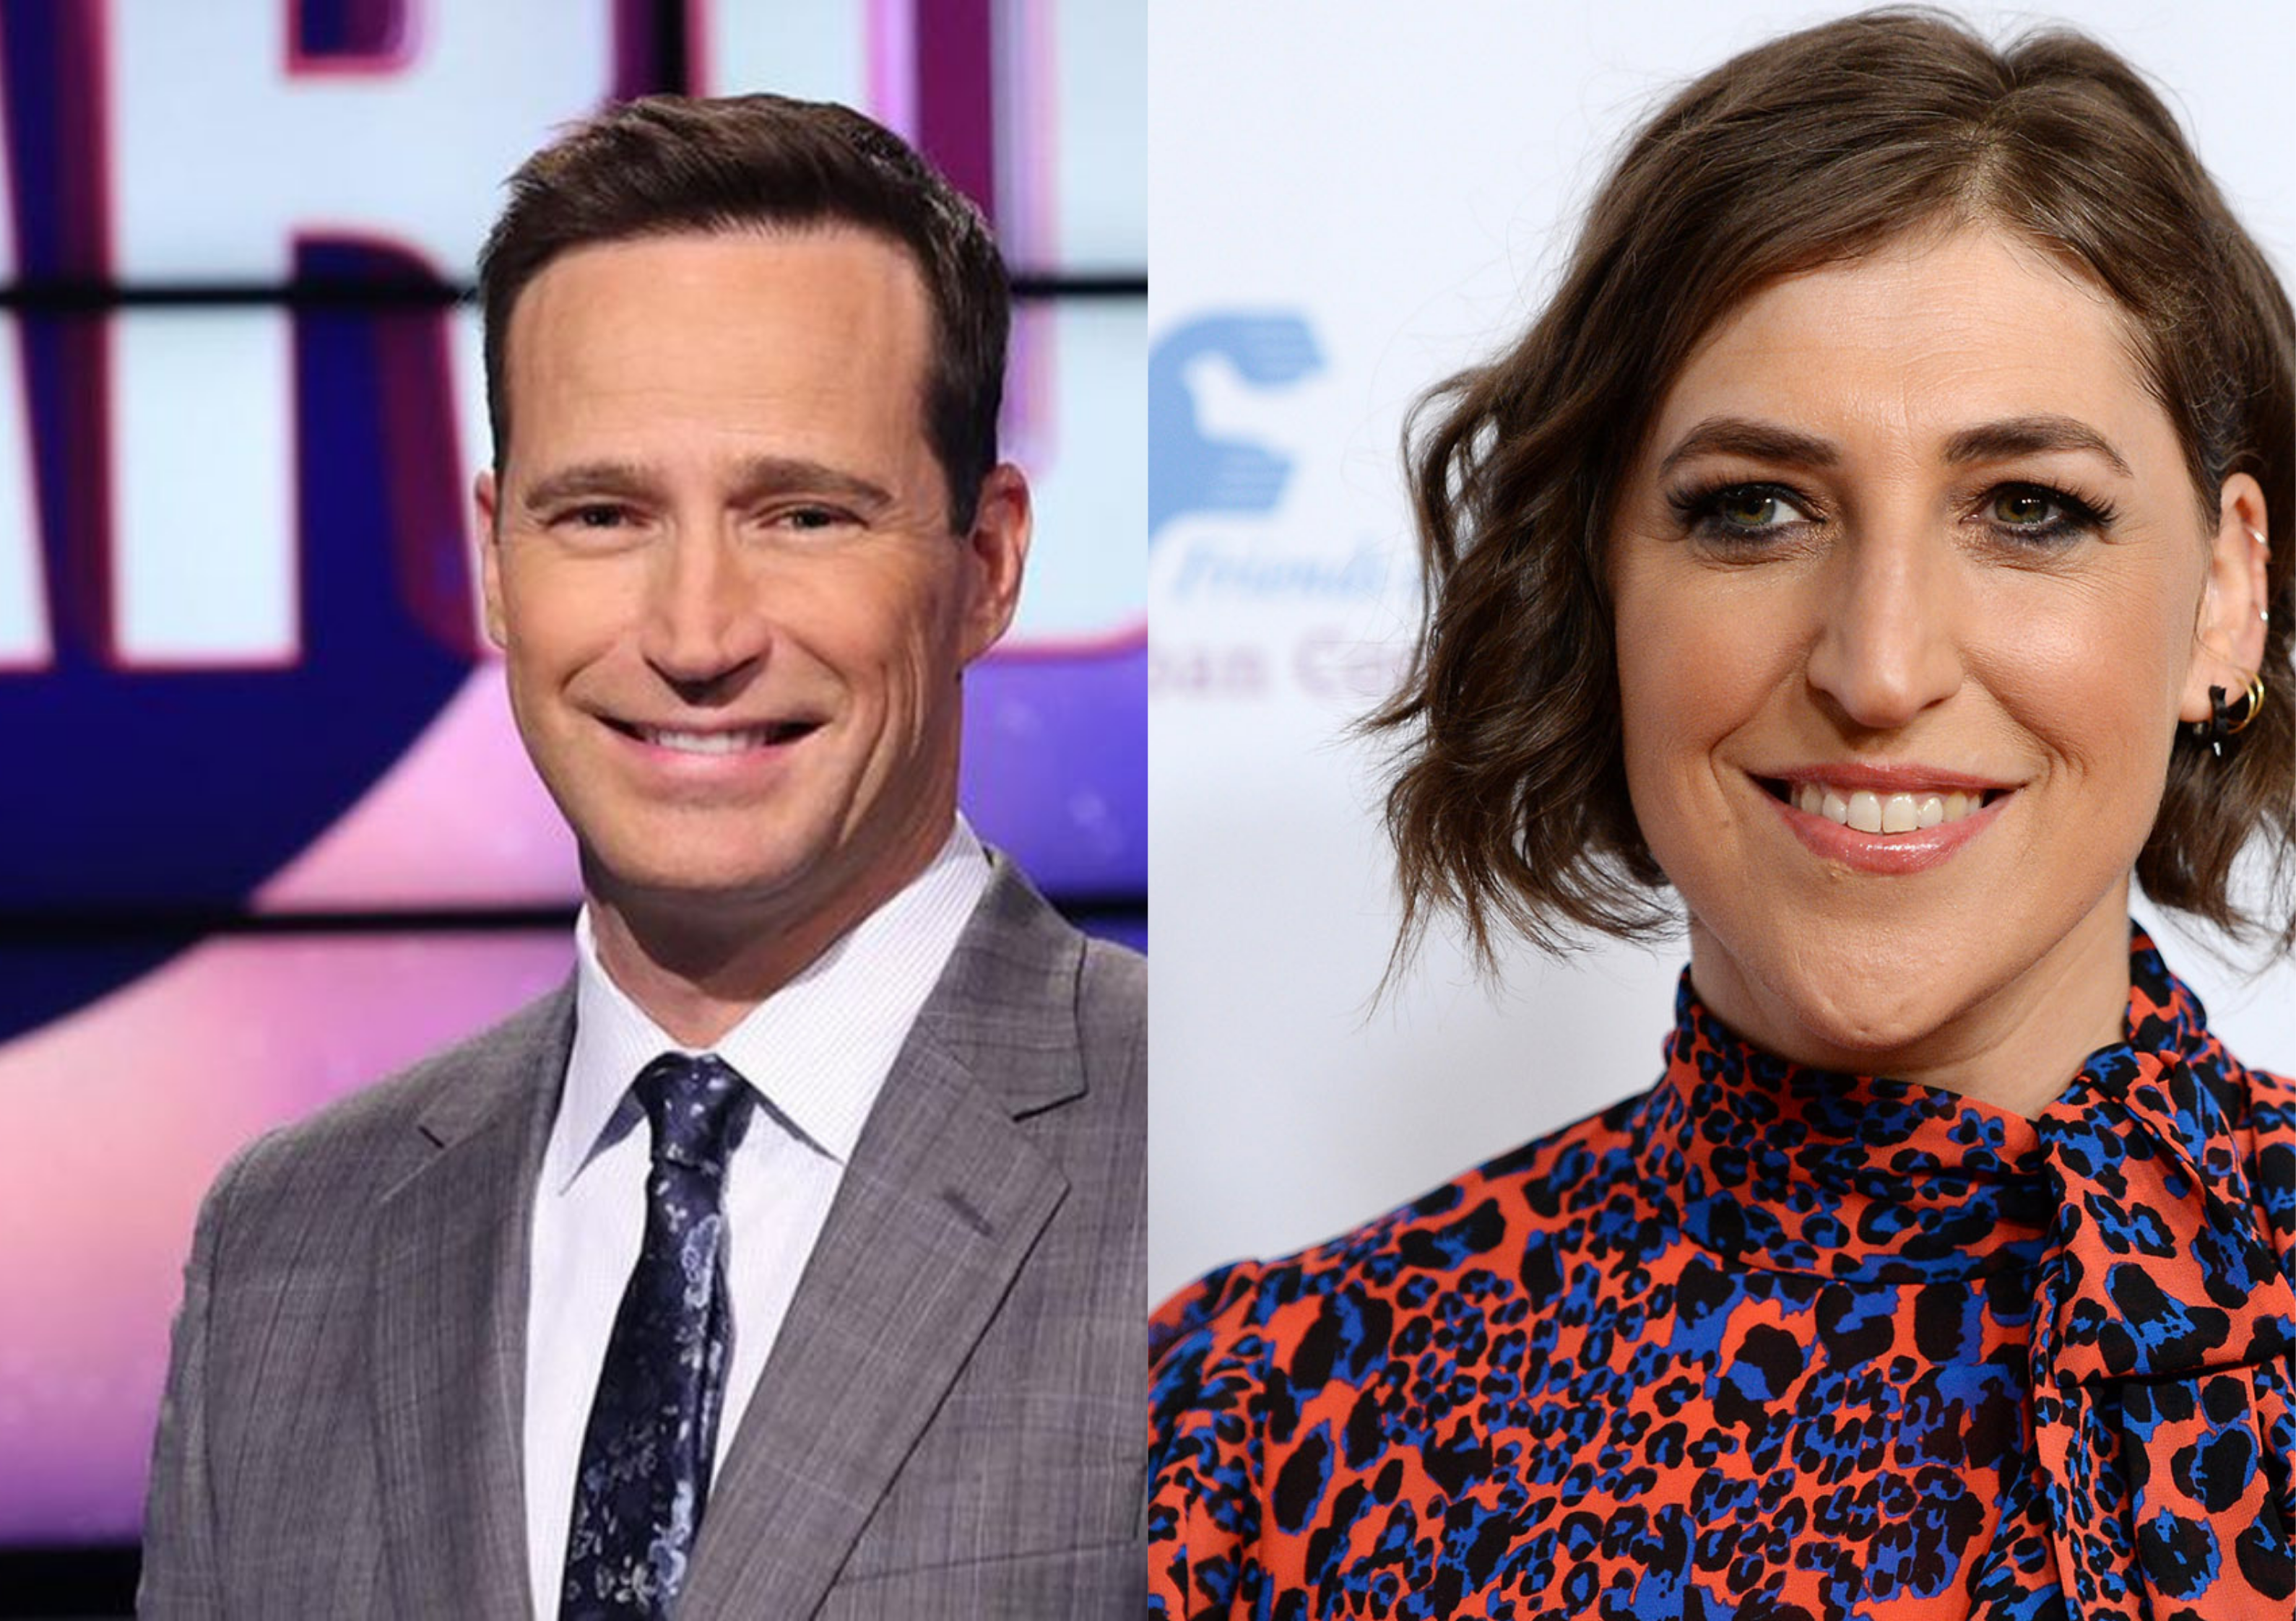 Mike Richards and Mayim Bialik Announced as the New Hosts of 'Jeopardy!'